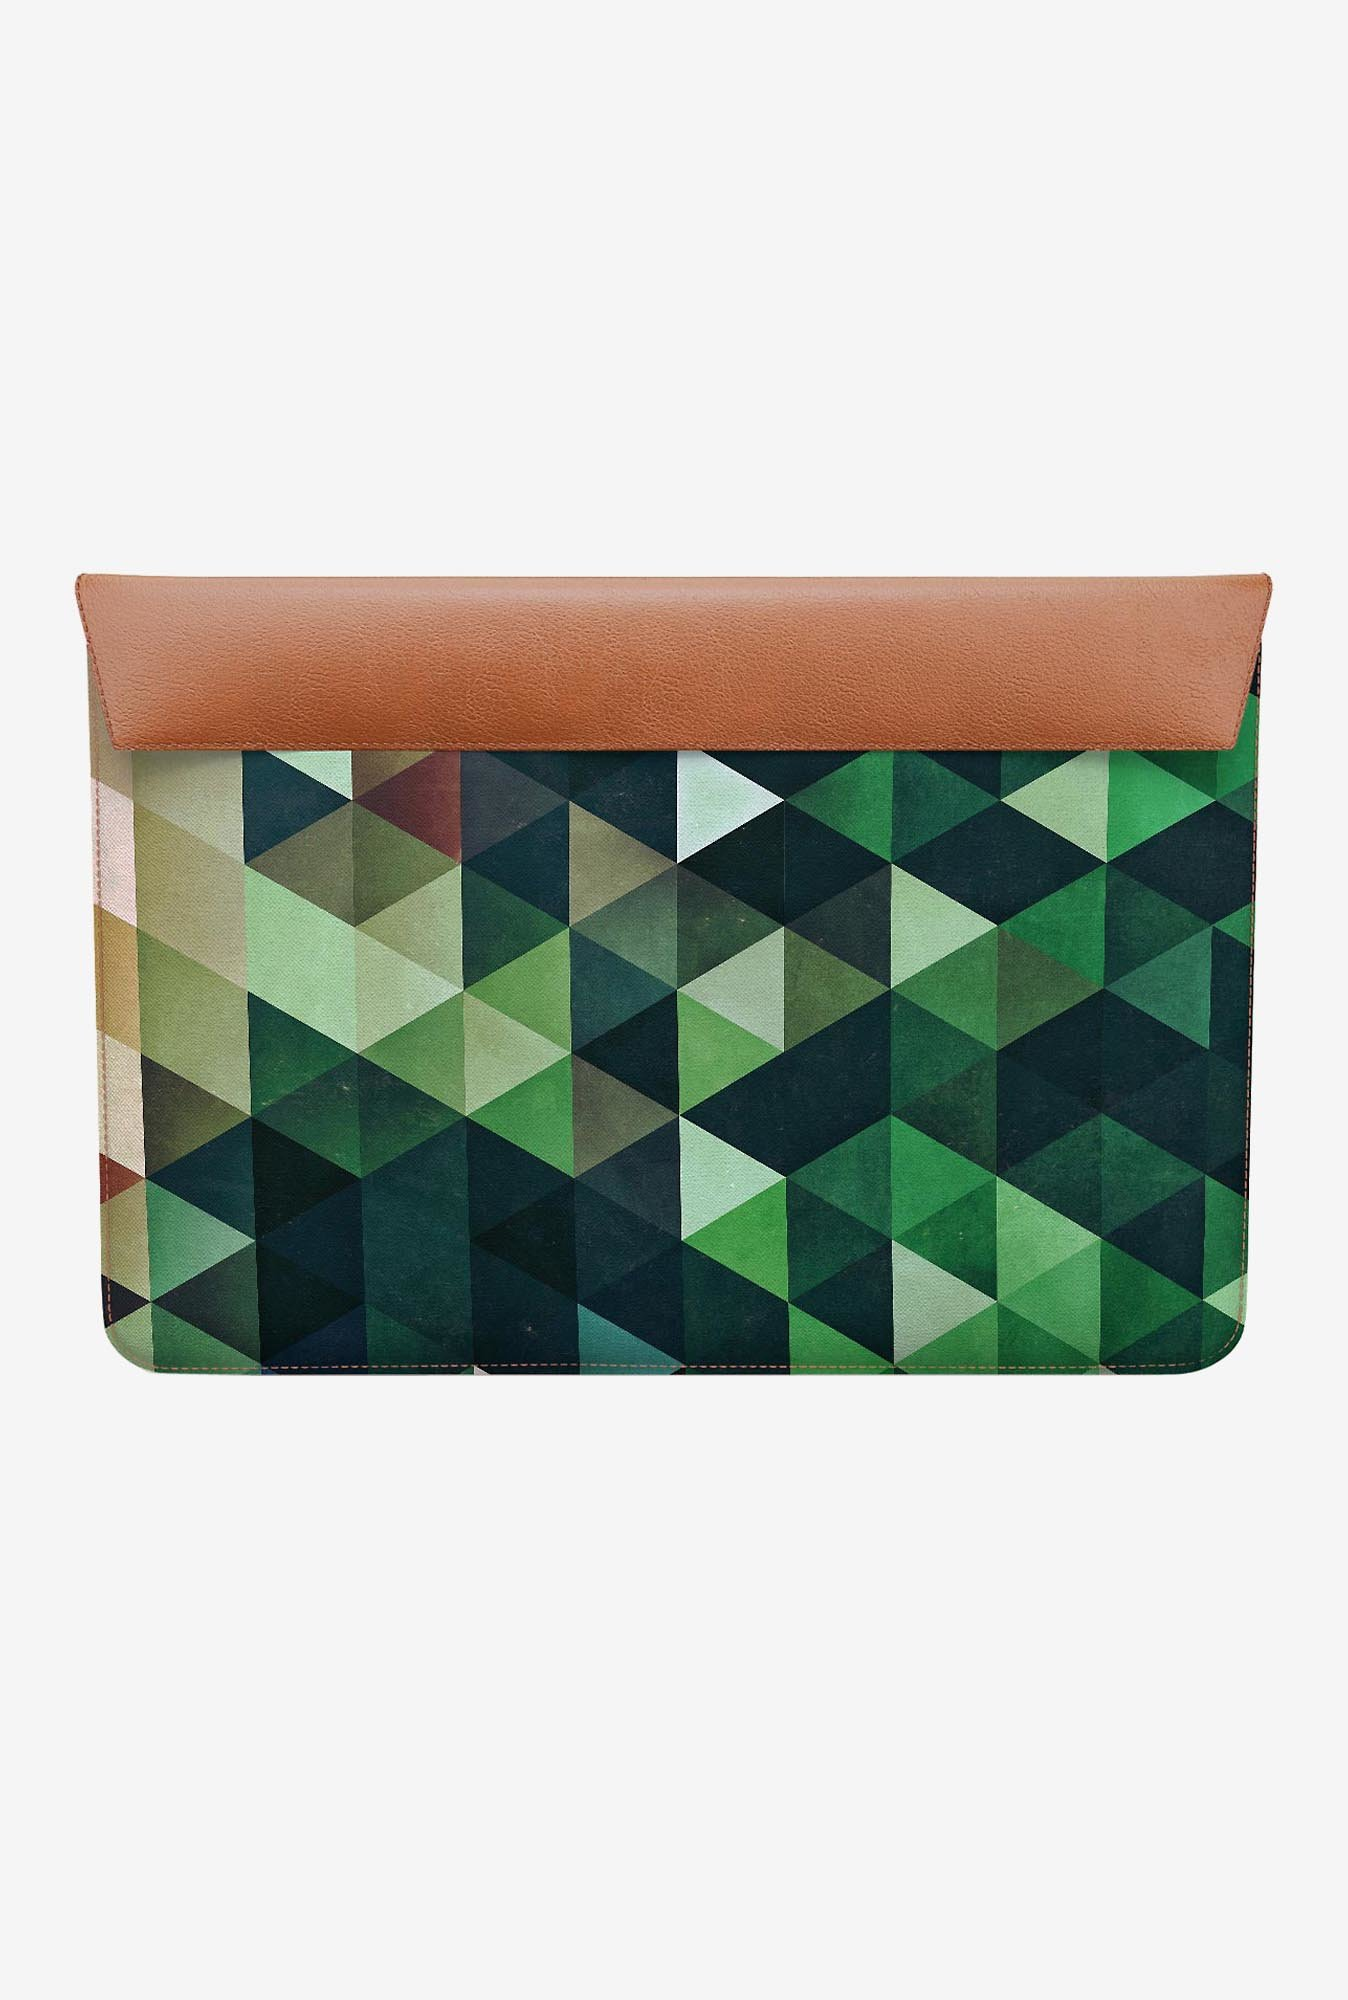 "DailyObjects Lyst Wyyds Macbook Air 11"" Envelope Sleeve"